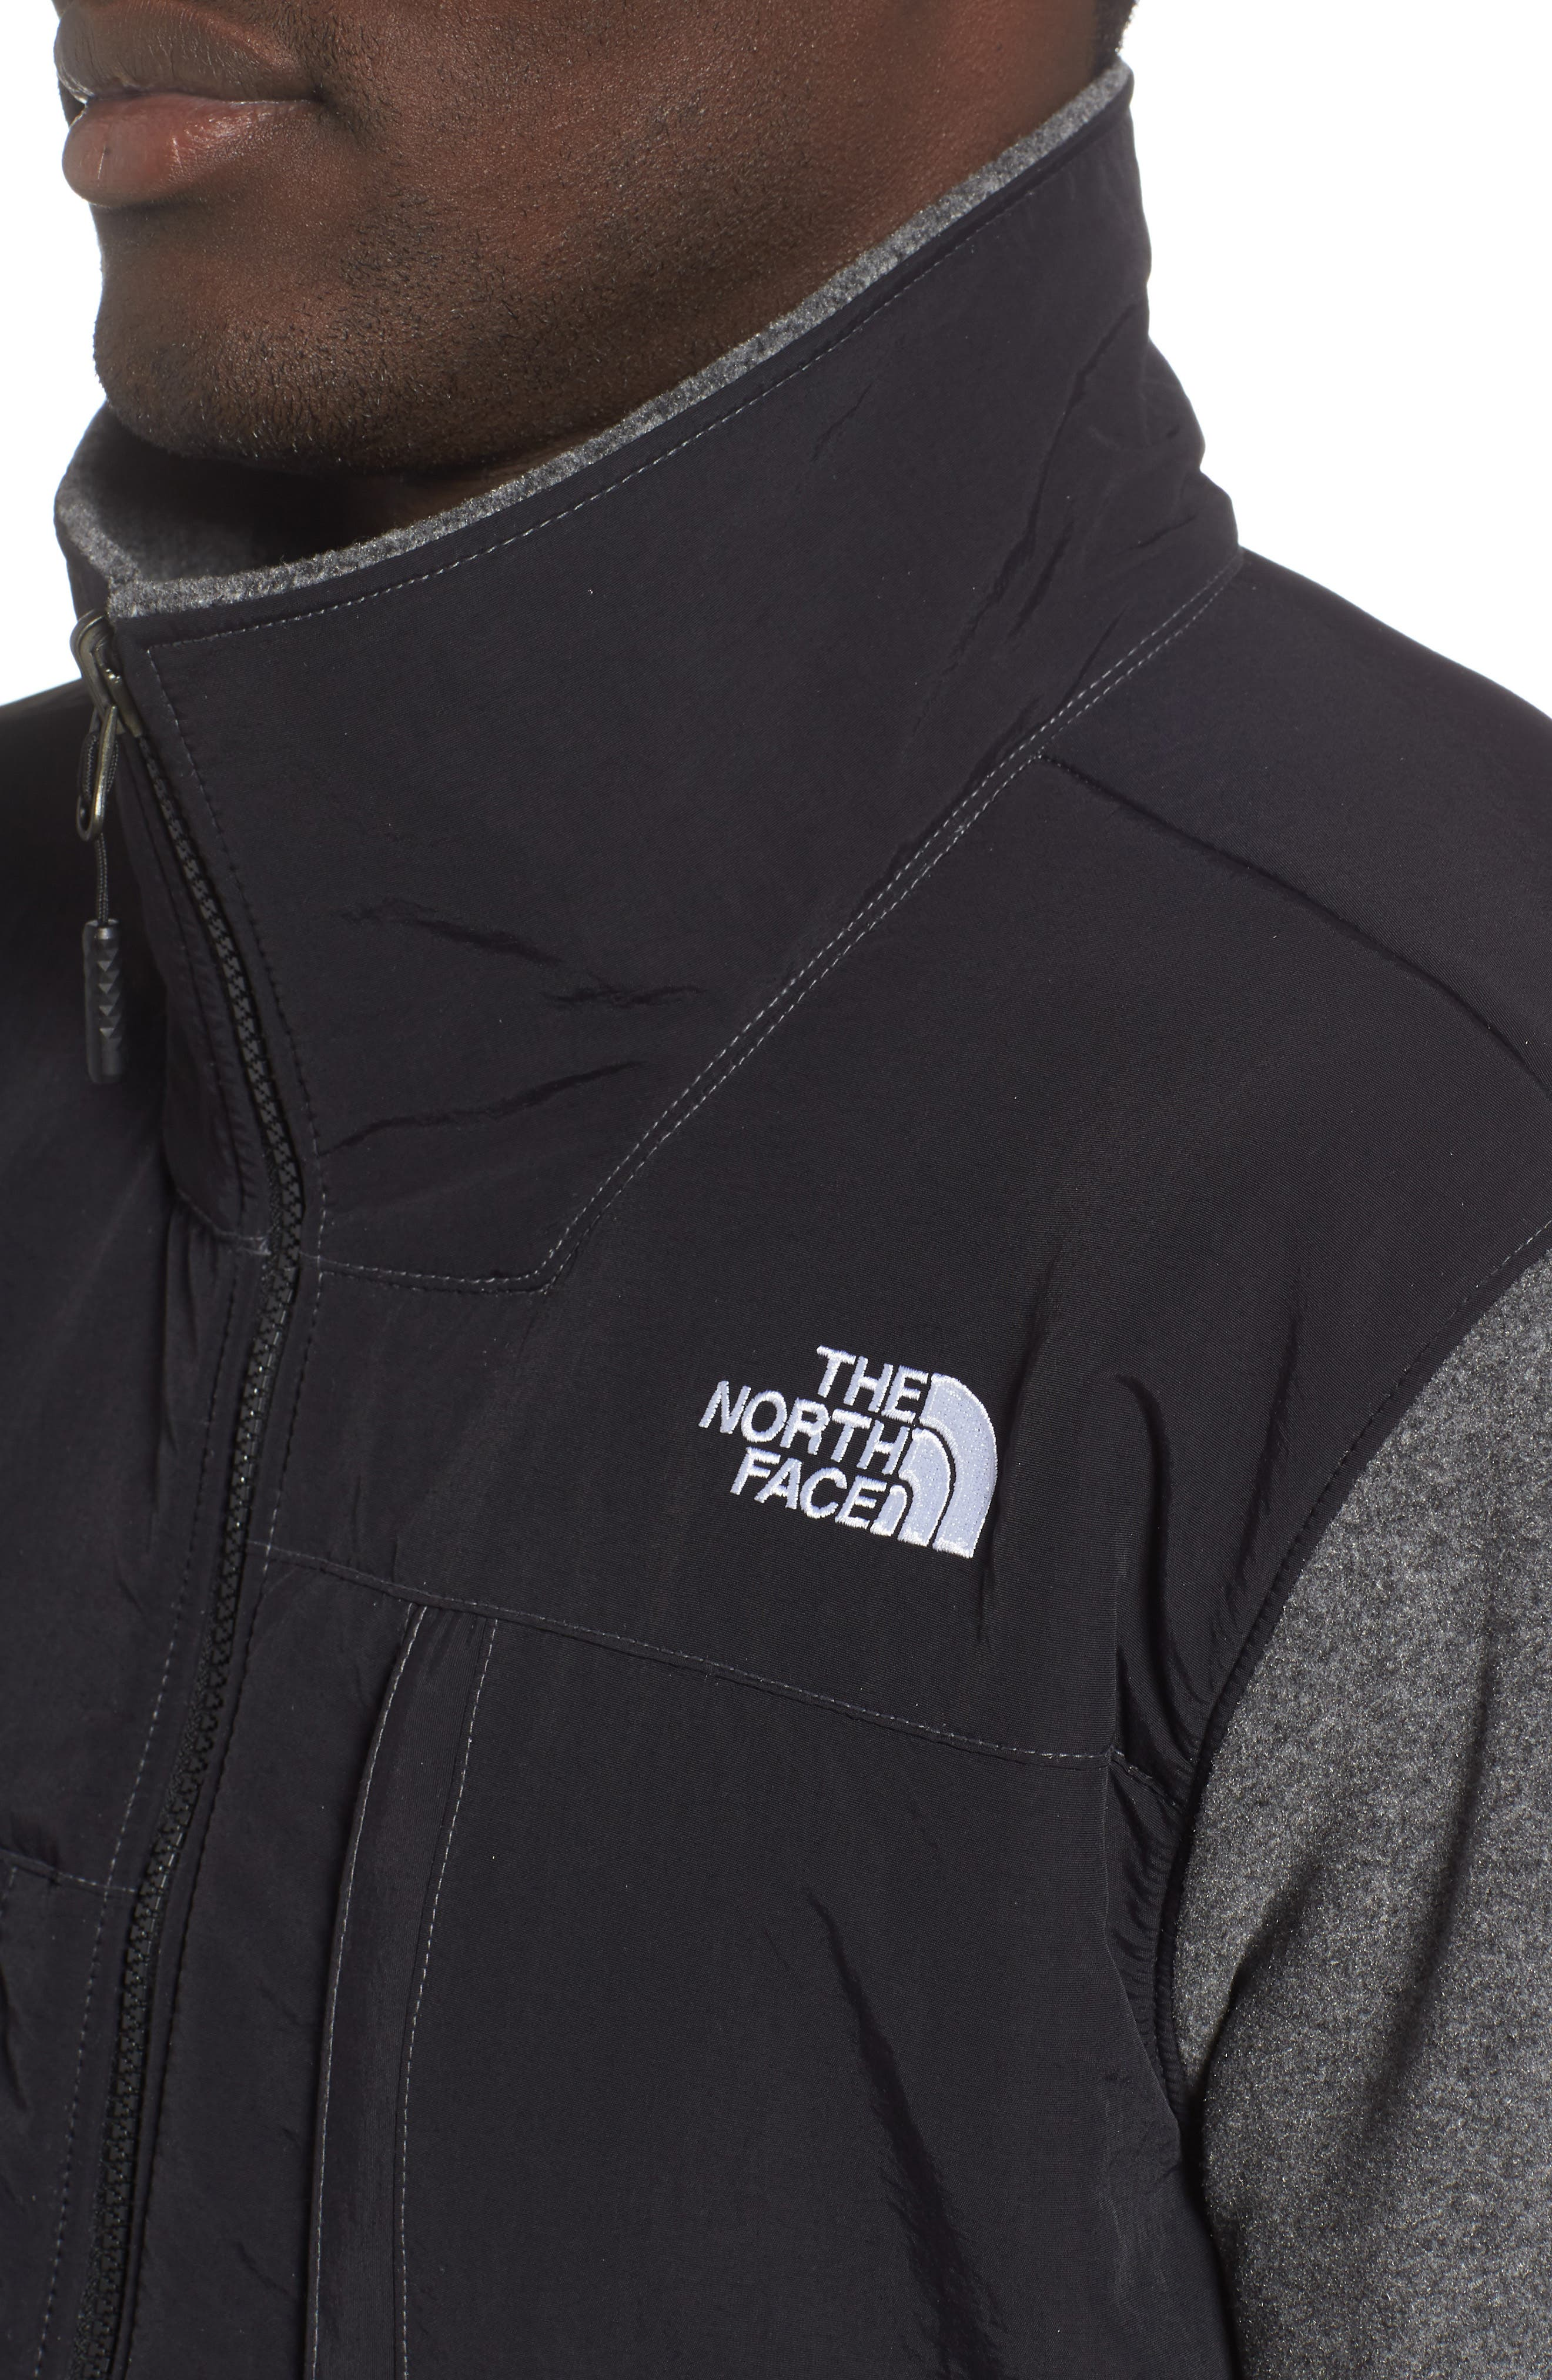 THE NORTH FACE,                             Denali 2 Jacket,                             Alternate thumbnail 4, color,                             RECYCLED CHARCOAL GREY HEATHER